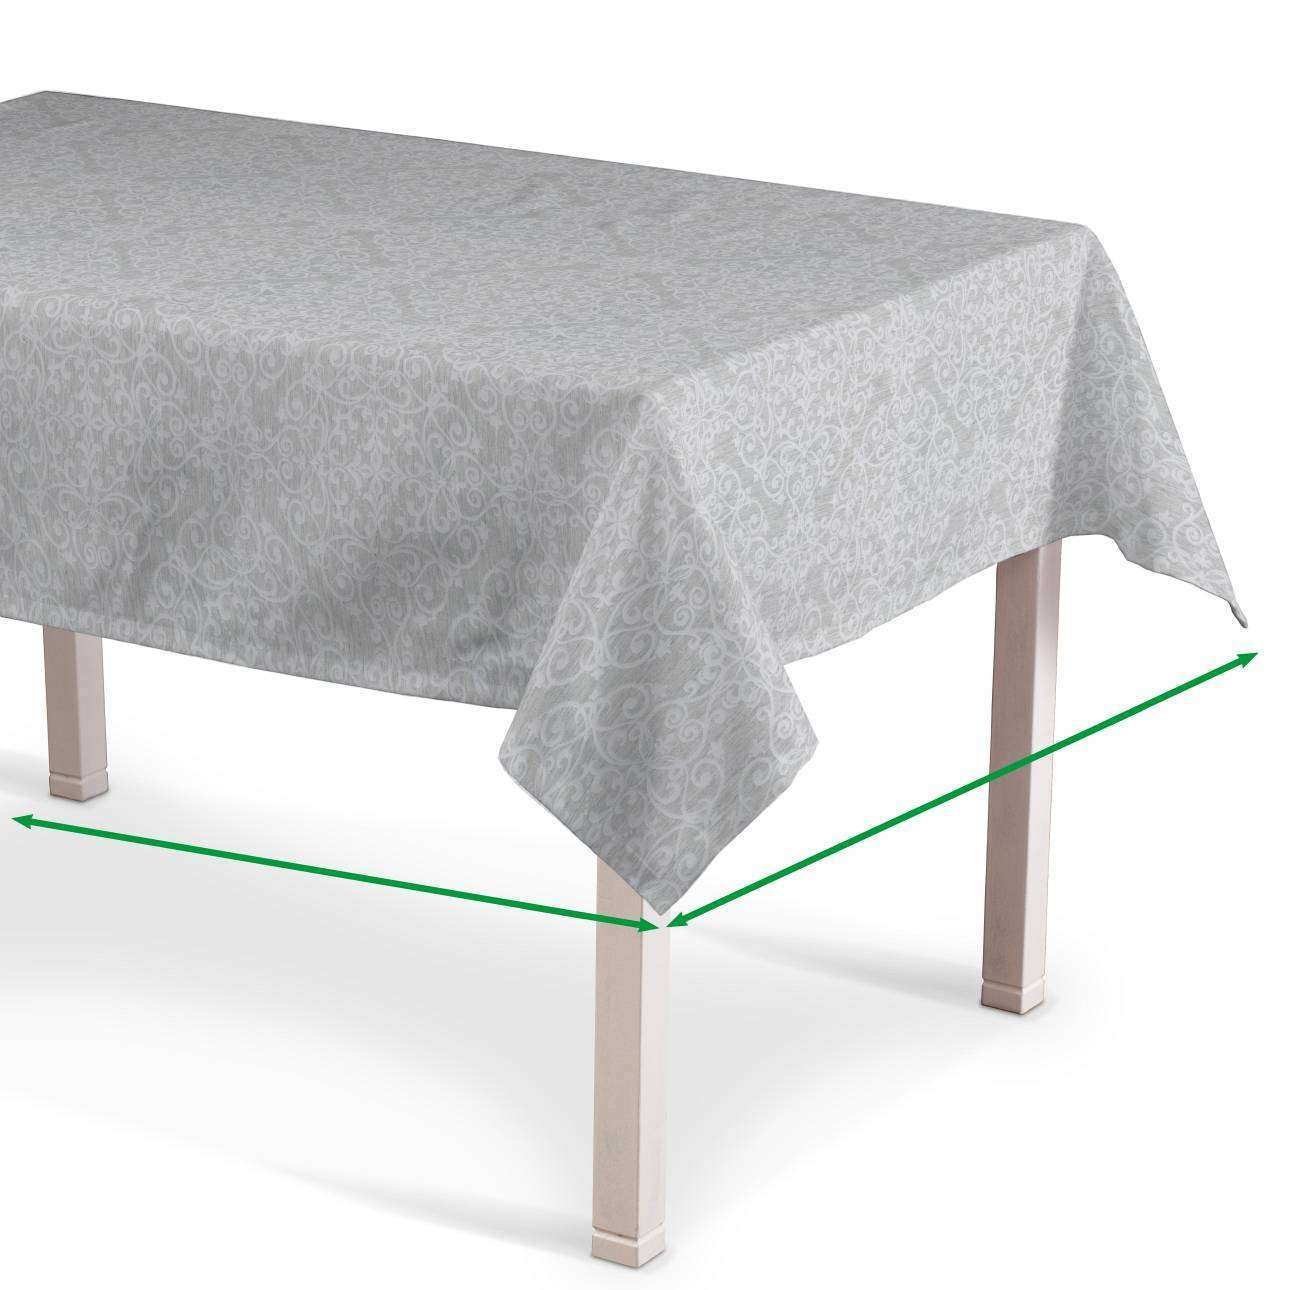 Rectangular tablecloth in collection Venice, fabric: 140-49